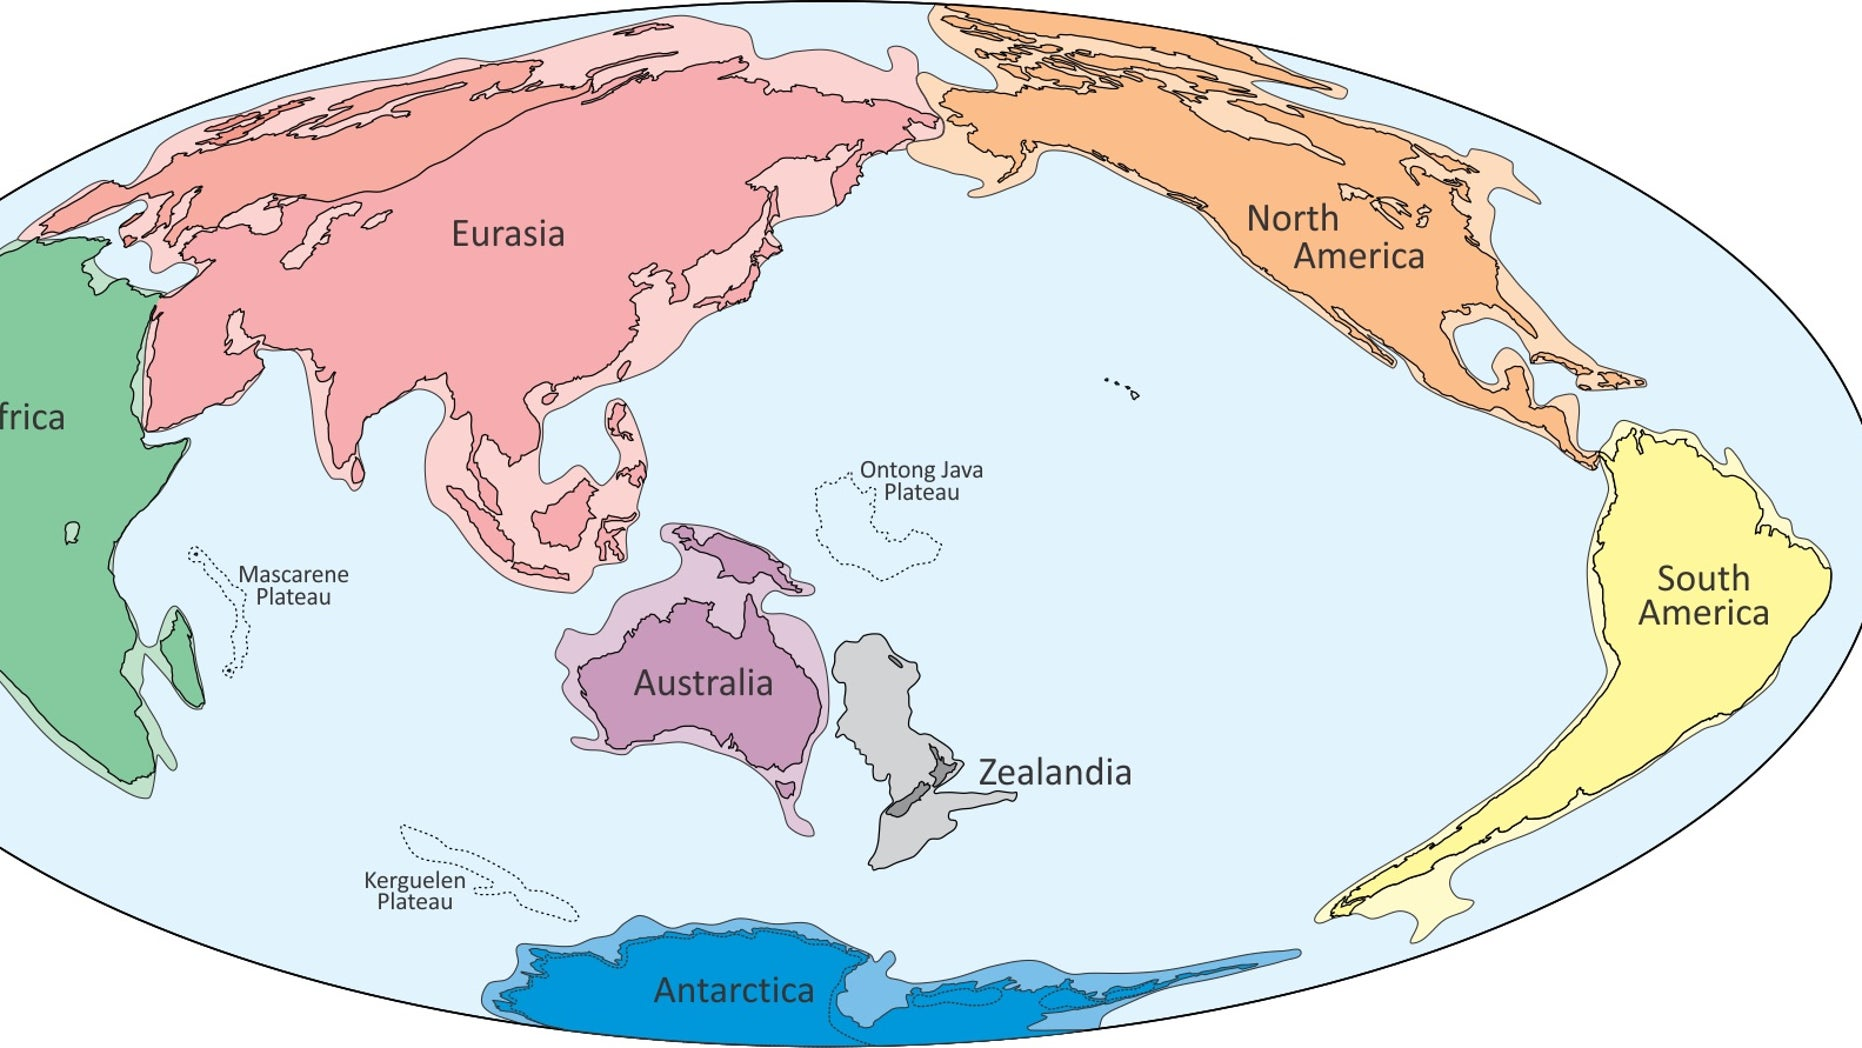 A proposed world map showing the eighth continent Zealandia. Though most of this continent is submerged beneath the ocean, scientists say it has all the geologic hallmarks of a separate continent.